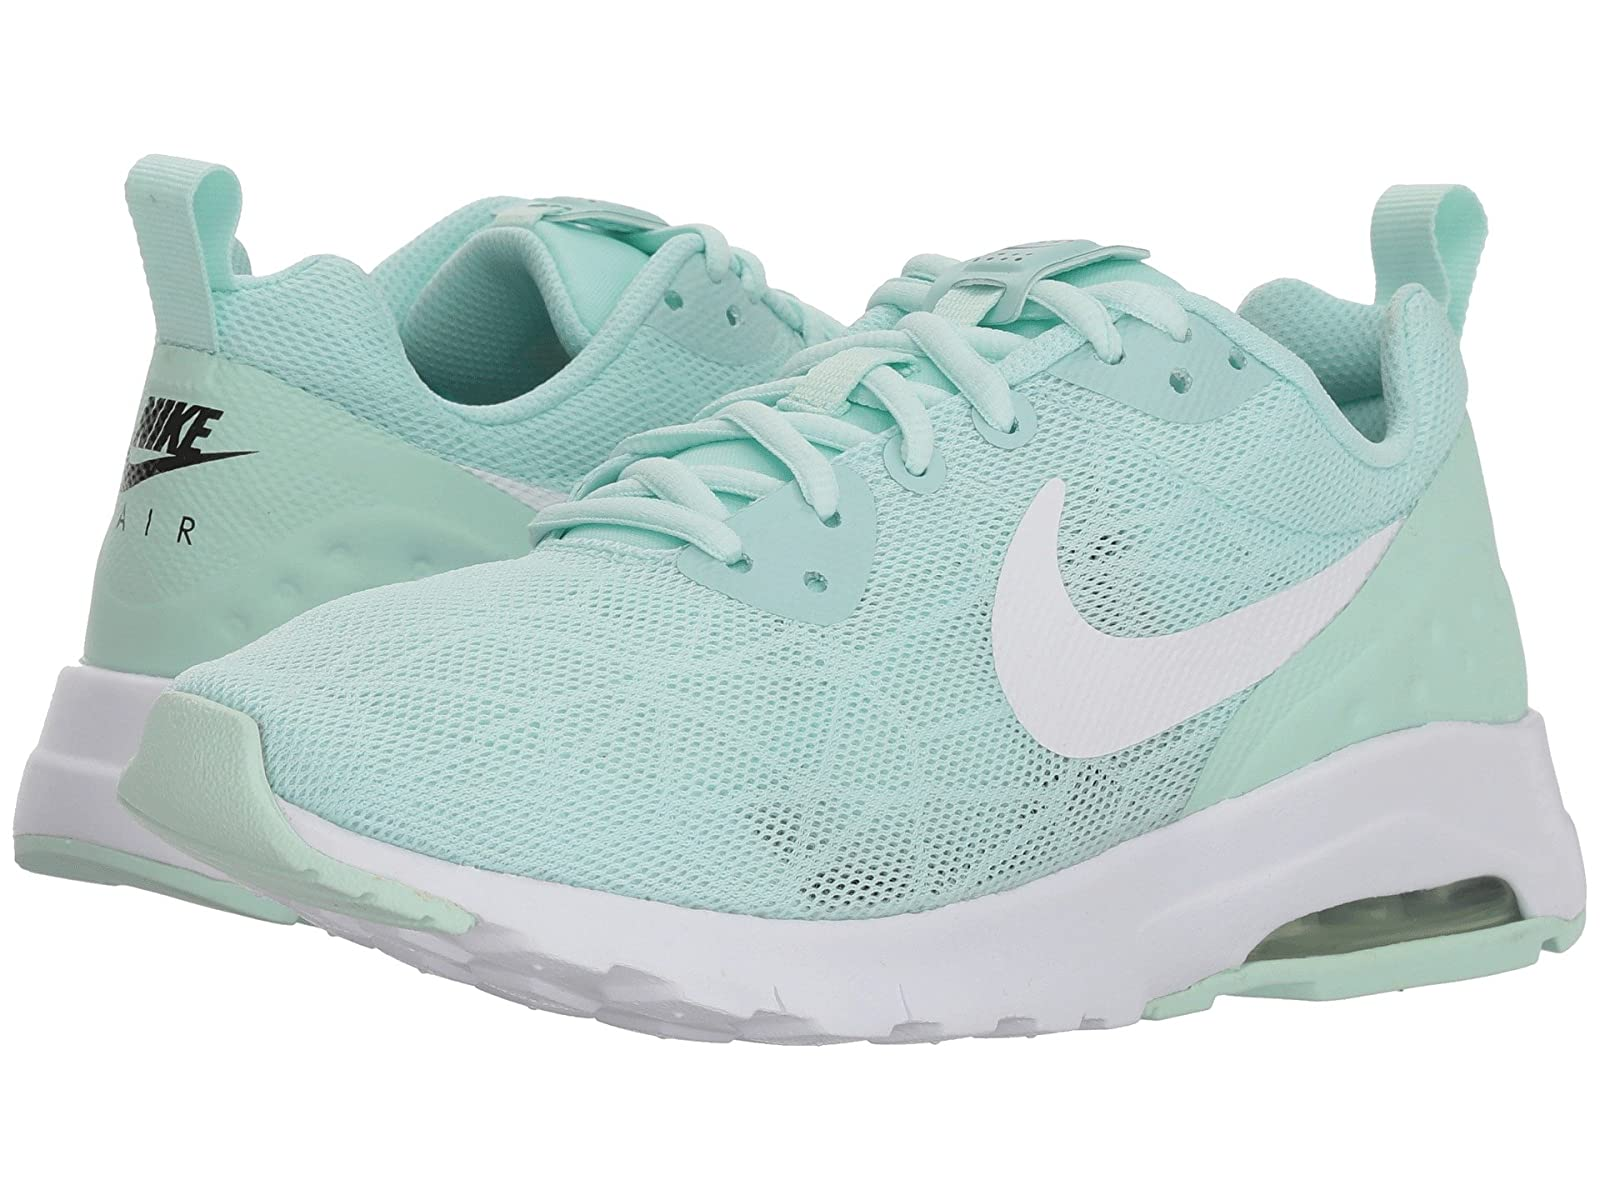 Nike Air Max Motion LW SECheap and distinctive eye-catching shoes